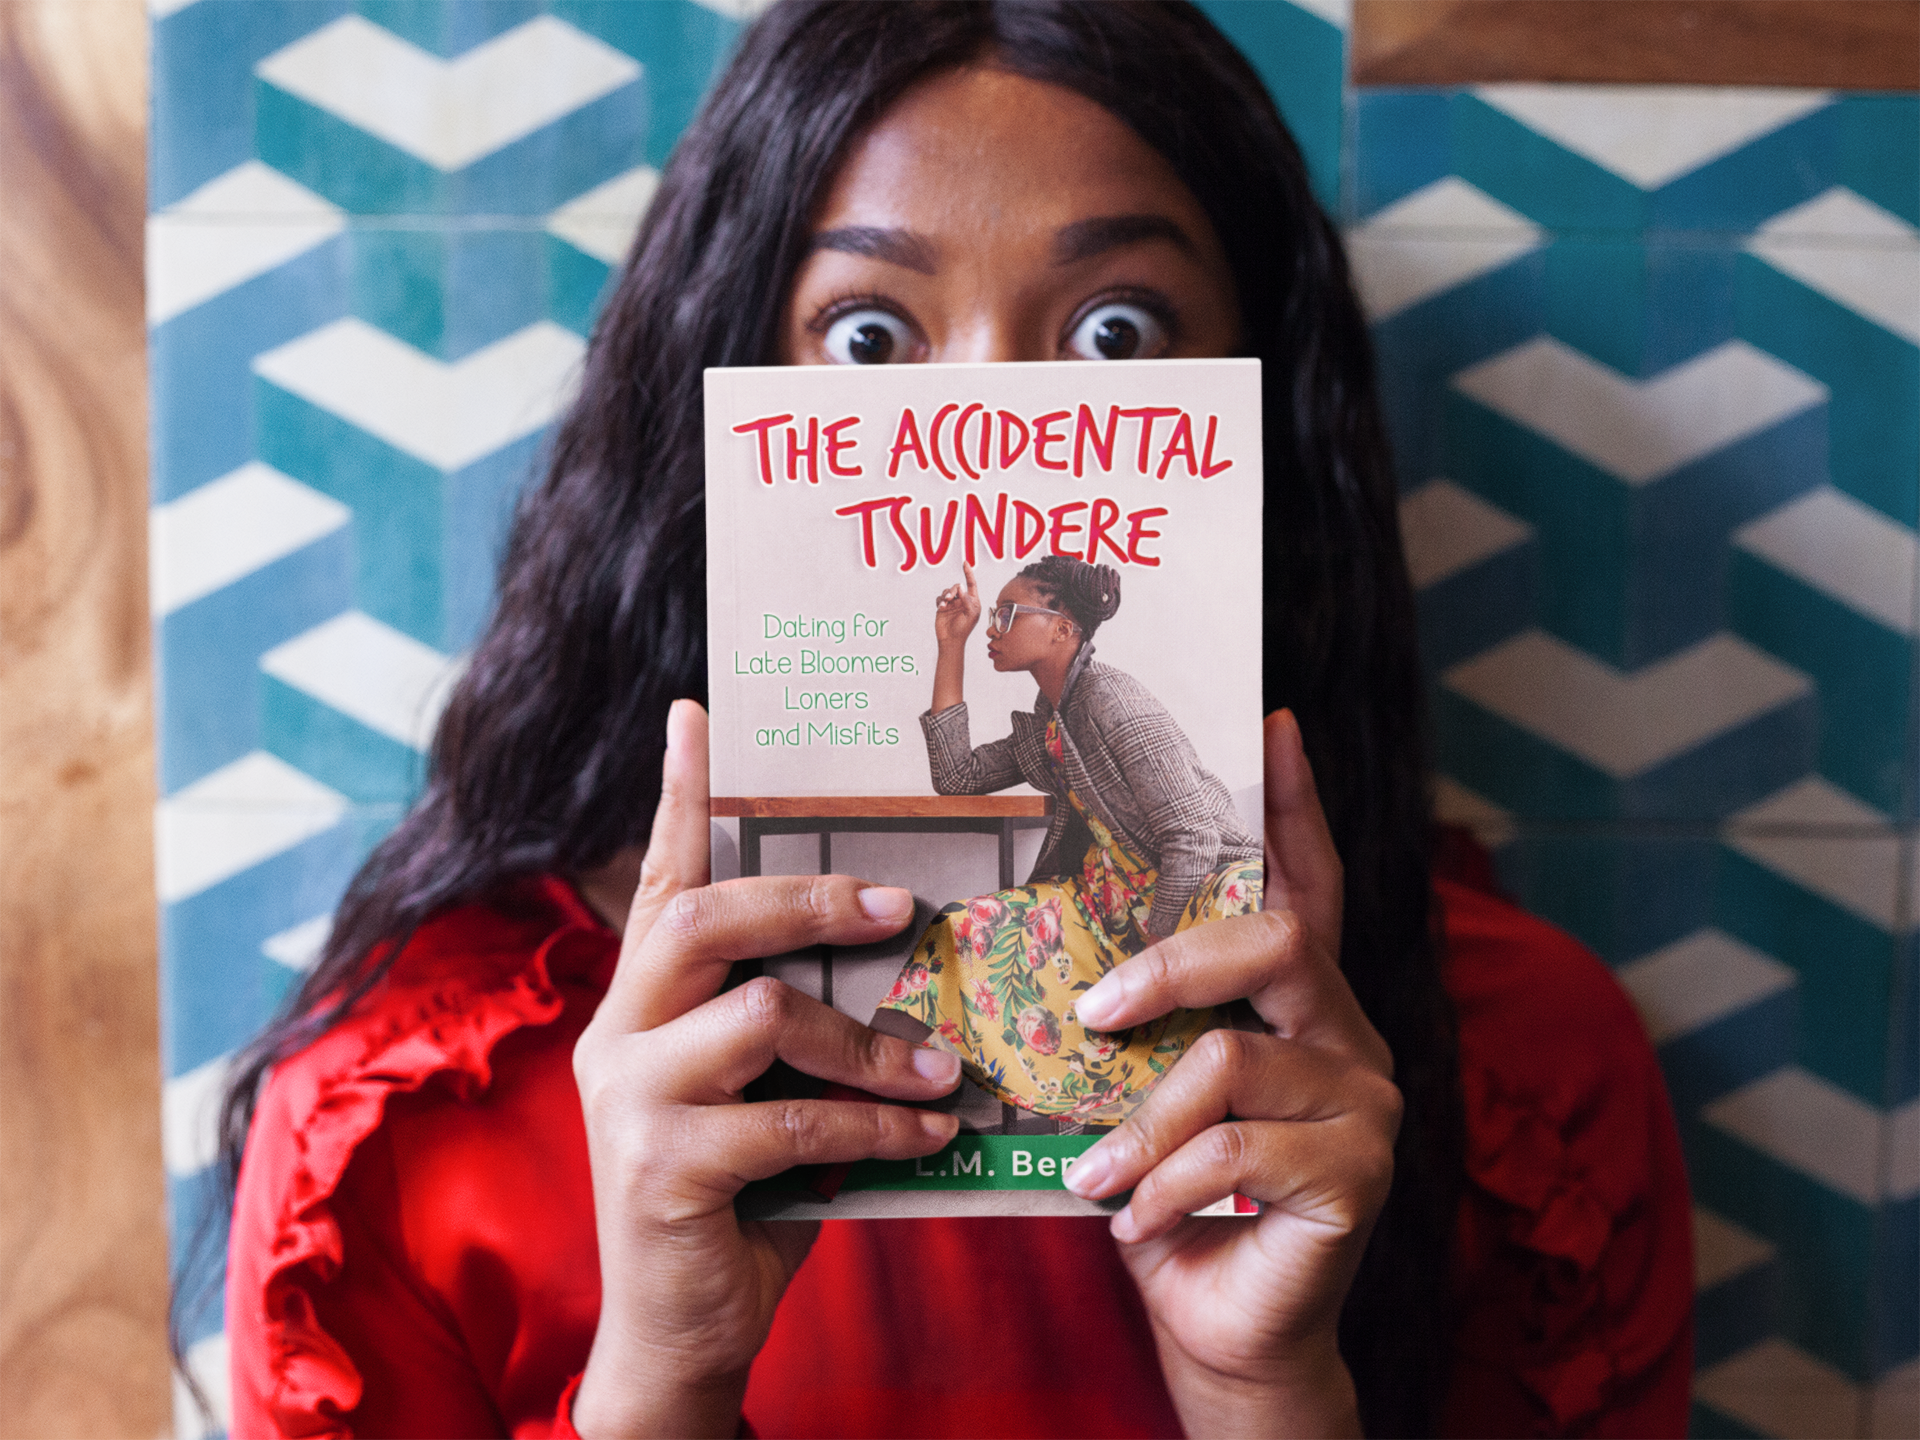 surprised-black-girl-holding-a-book-mockup-while-against-a-tiles-wall-a17345.png